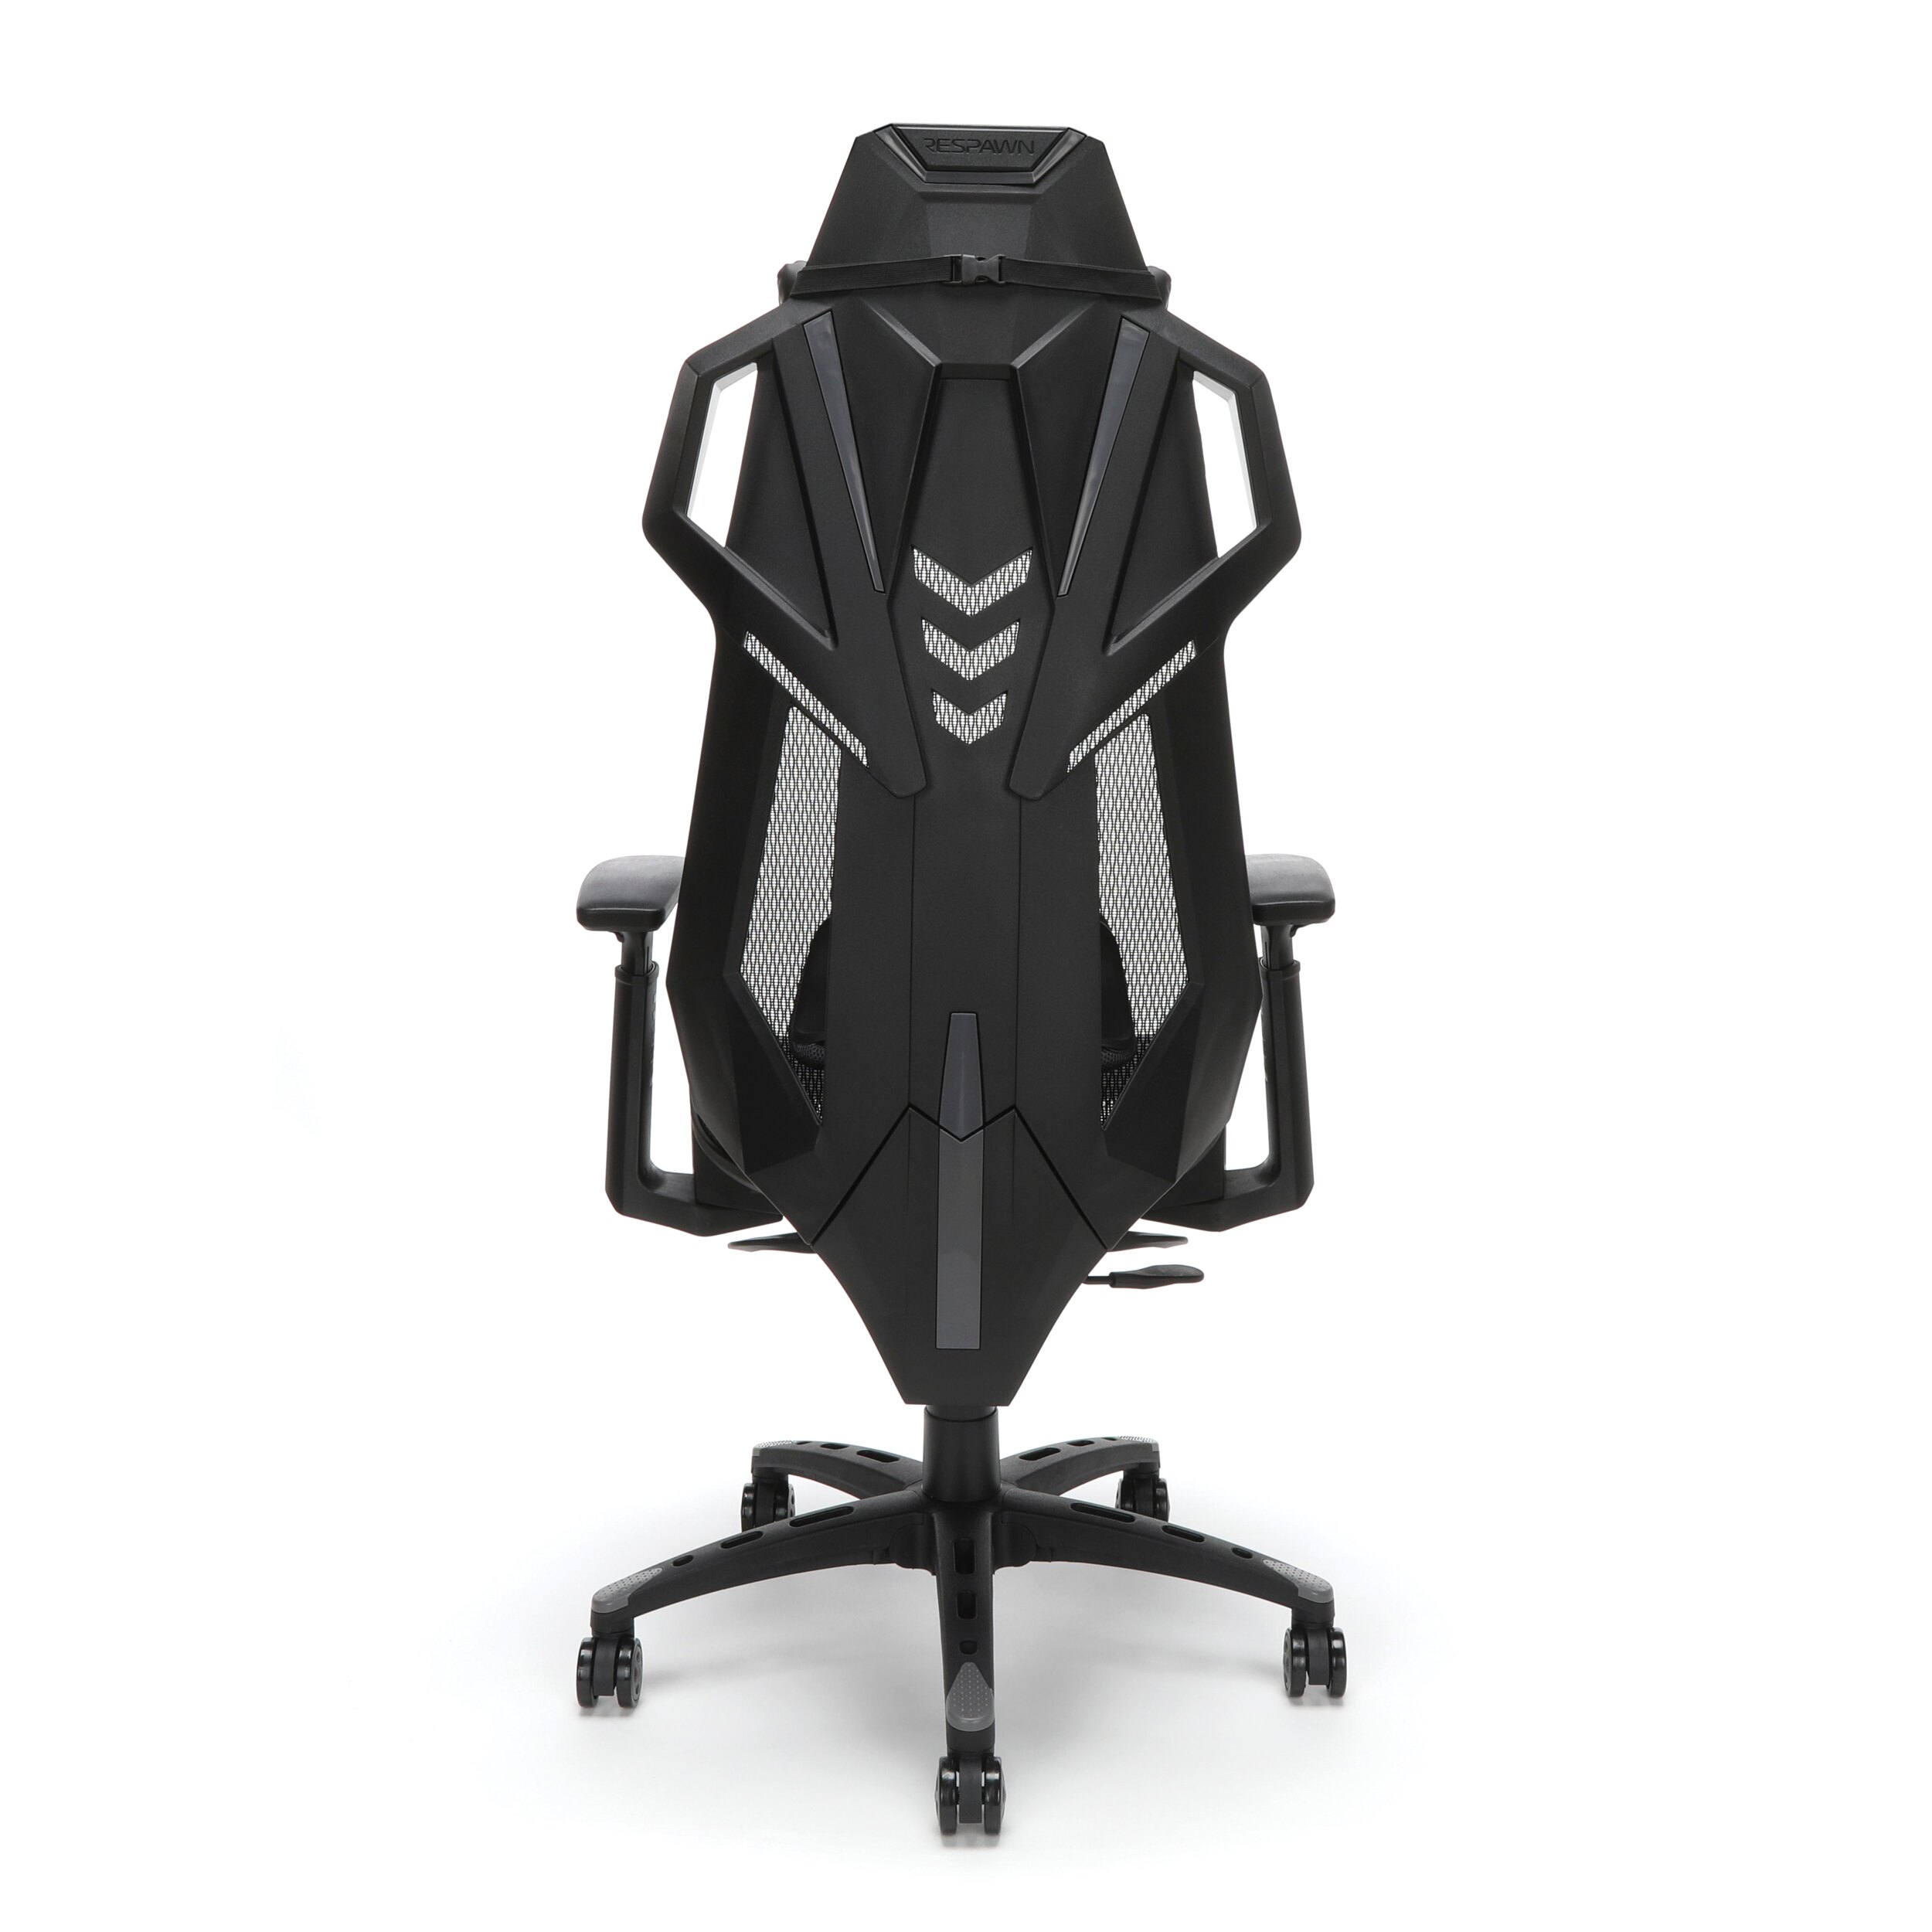 RESPAWN-300 Racing Style Gaming Chair - Ergonomic Performance All Mesh Chair, Office or Gaming Chair (RSP-300) 6